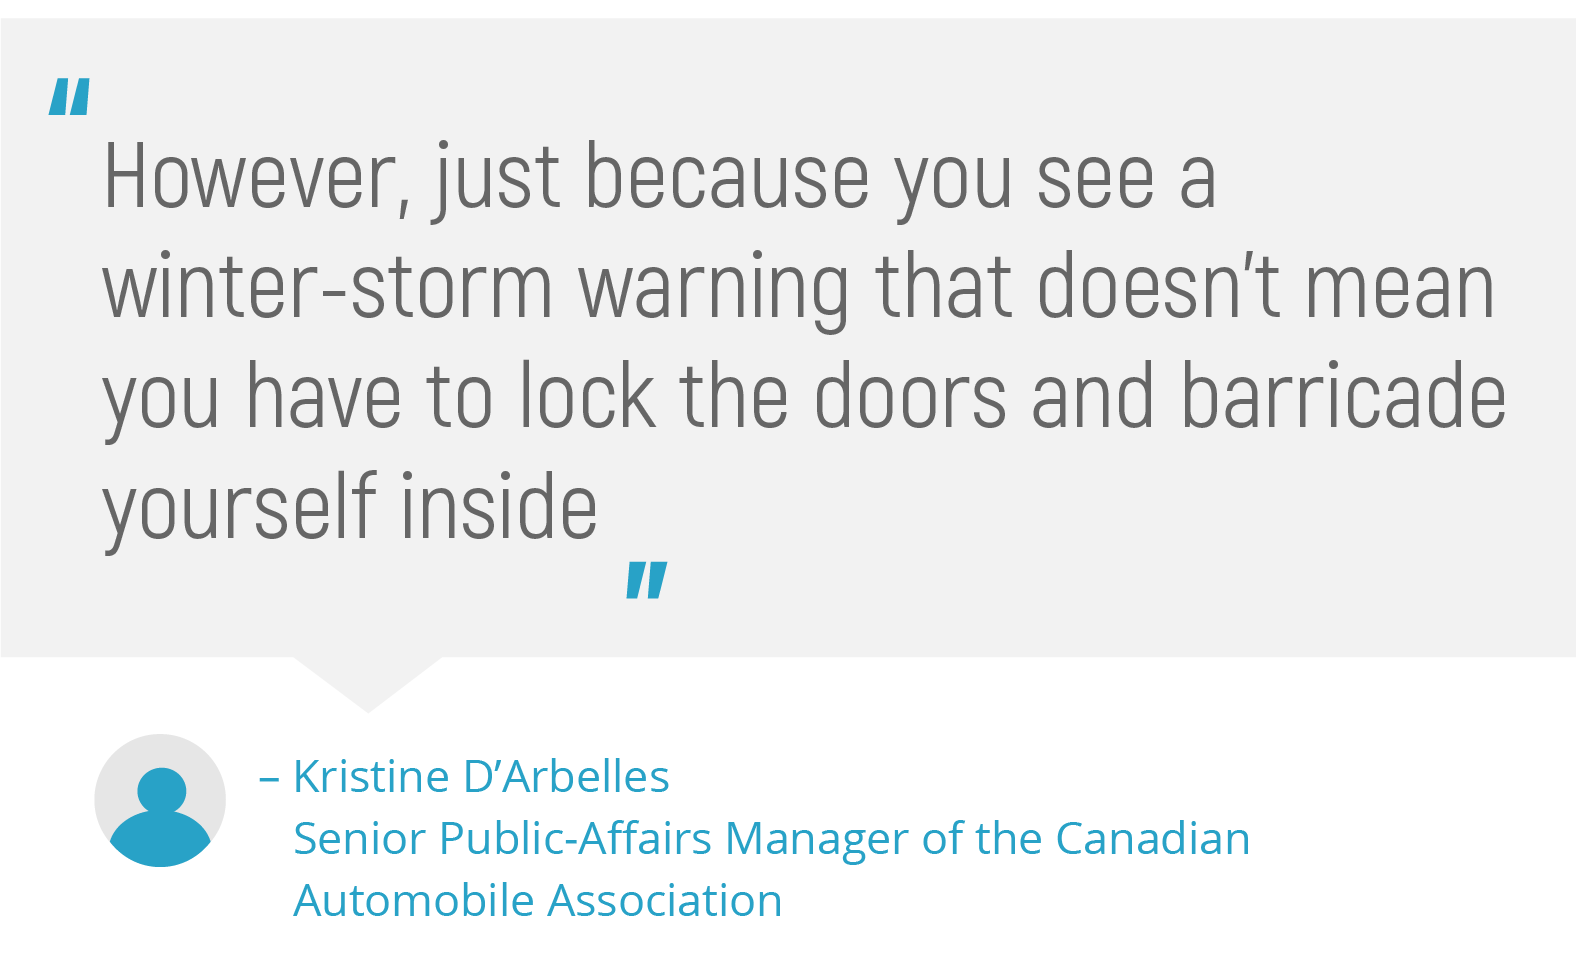 Pull quote on winter storm warnings from Kristine D'Arbelles